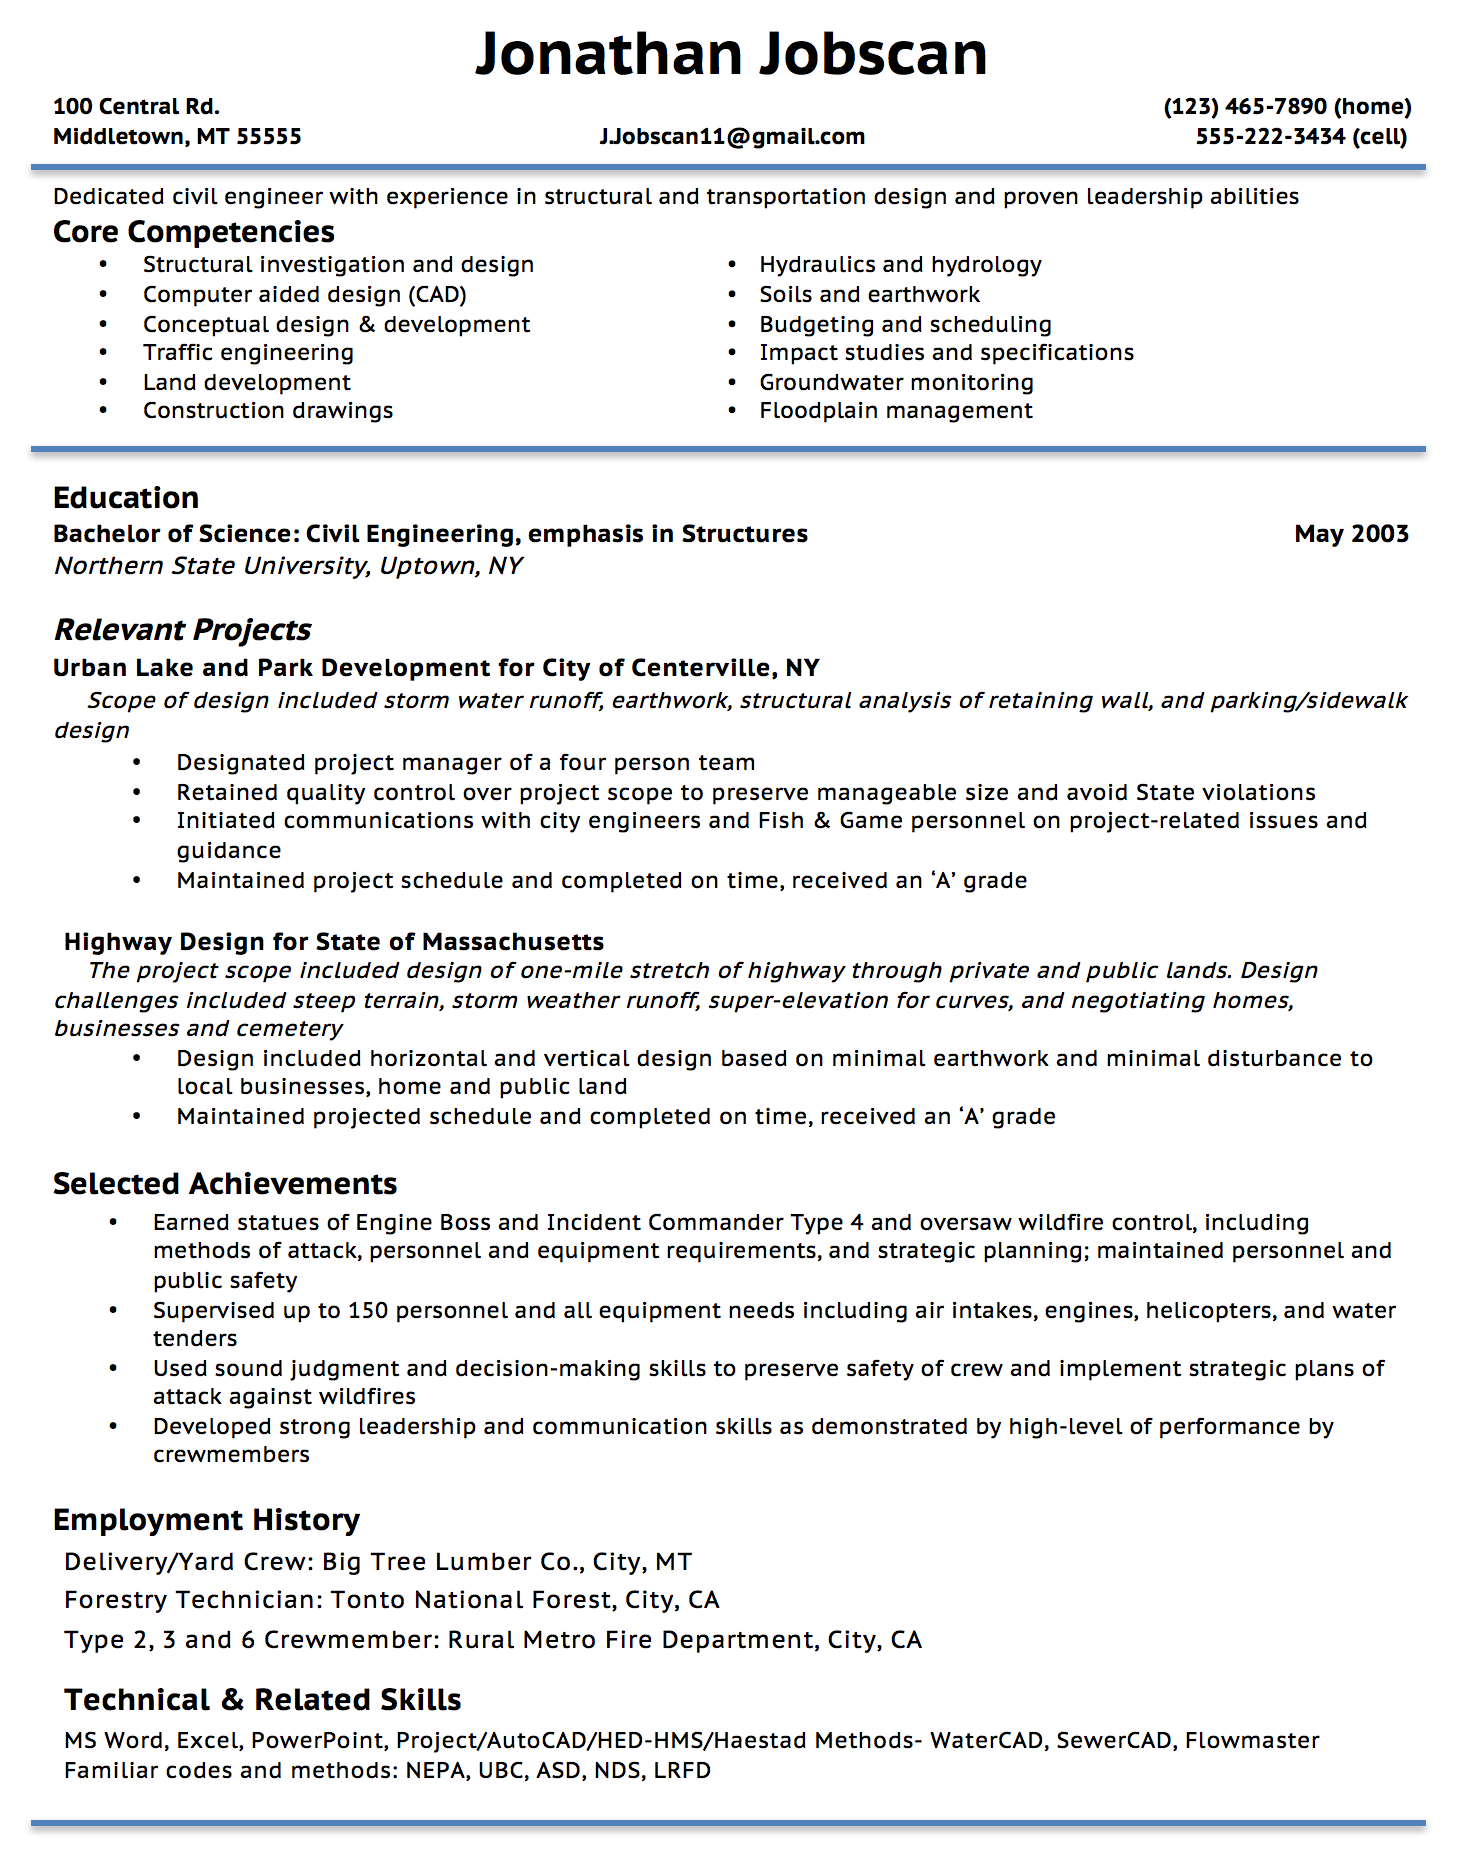 Opposenewapstandardsus  Scenic Resume Writing Guide  Jobscan With Lovable Example Of A Functional Resume Format With Adorable Resume Education Examples Also Free Sample Resumes In Addition Resume For High School Graduate And Resume Language As Well As Information Technology Resume Additionally What Is A Resume Cv From Jobscanco With Opposenewapstandardsus  Lovable Resume Writing Guide  Jobscan With Adorable Example Of A Functional Resume Format And Scenic Resume Education Examples Also Free Sample Resumes In Addition Resume For High School Graduate From Jobscanco